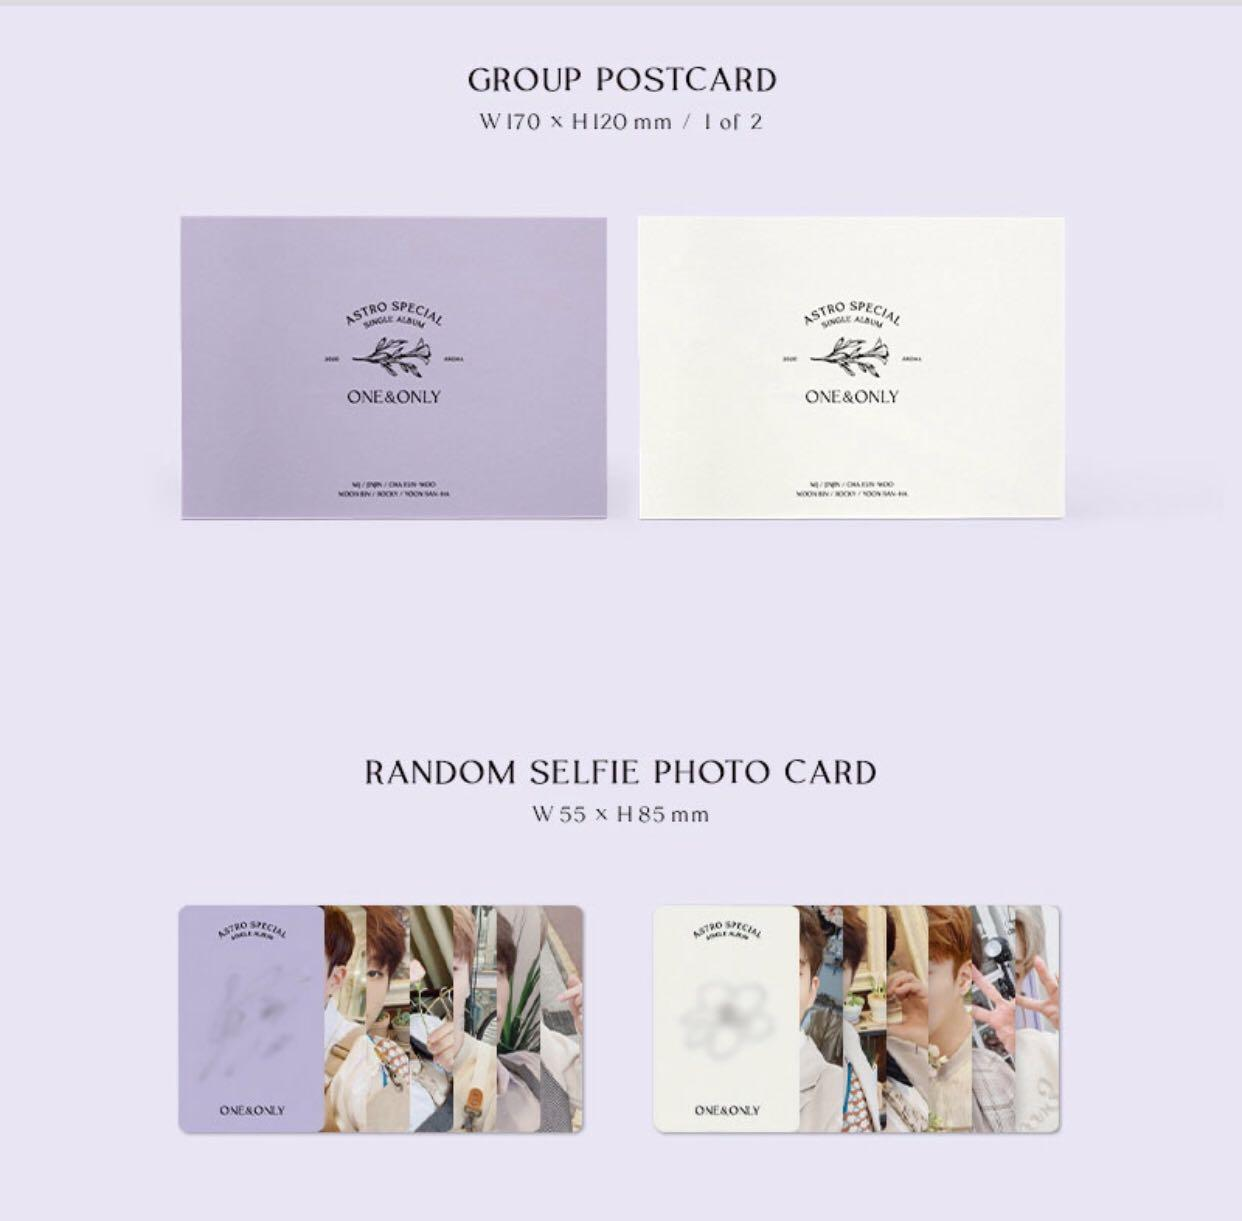 [PREORDER] ASTRO - ONE & ONLY Special Single Album